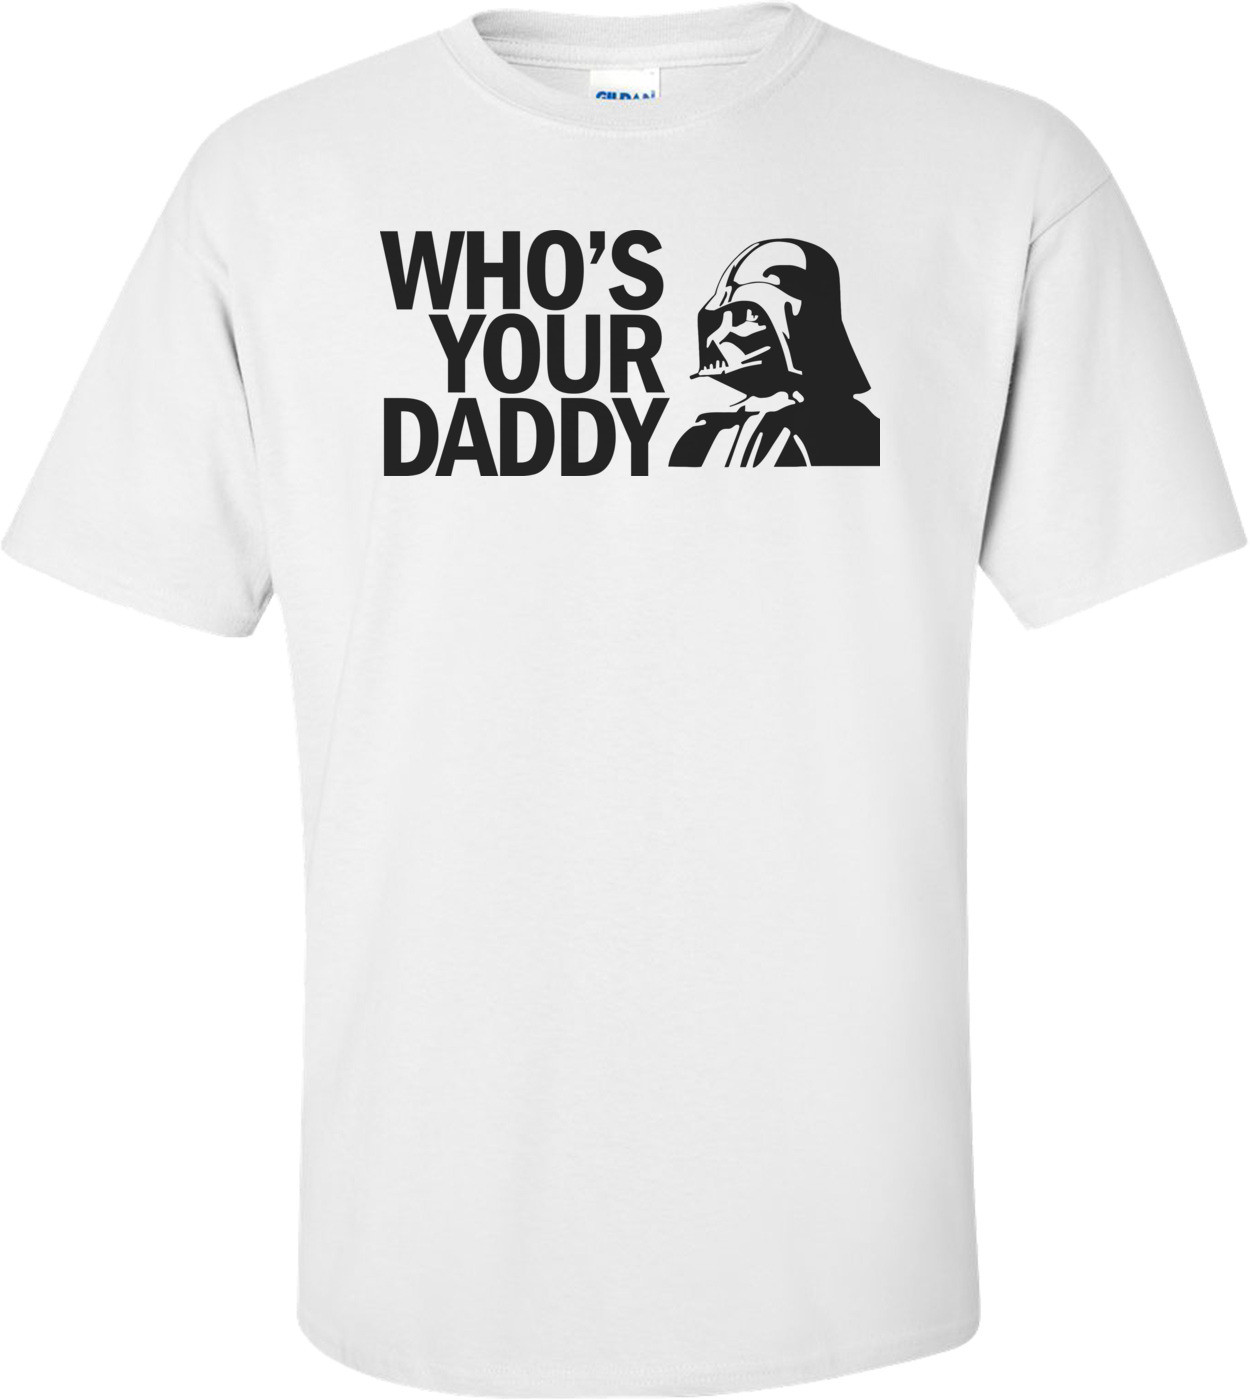 Who's Your Daddy Funny Star Wars